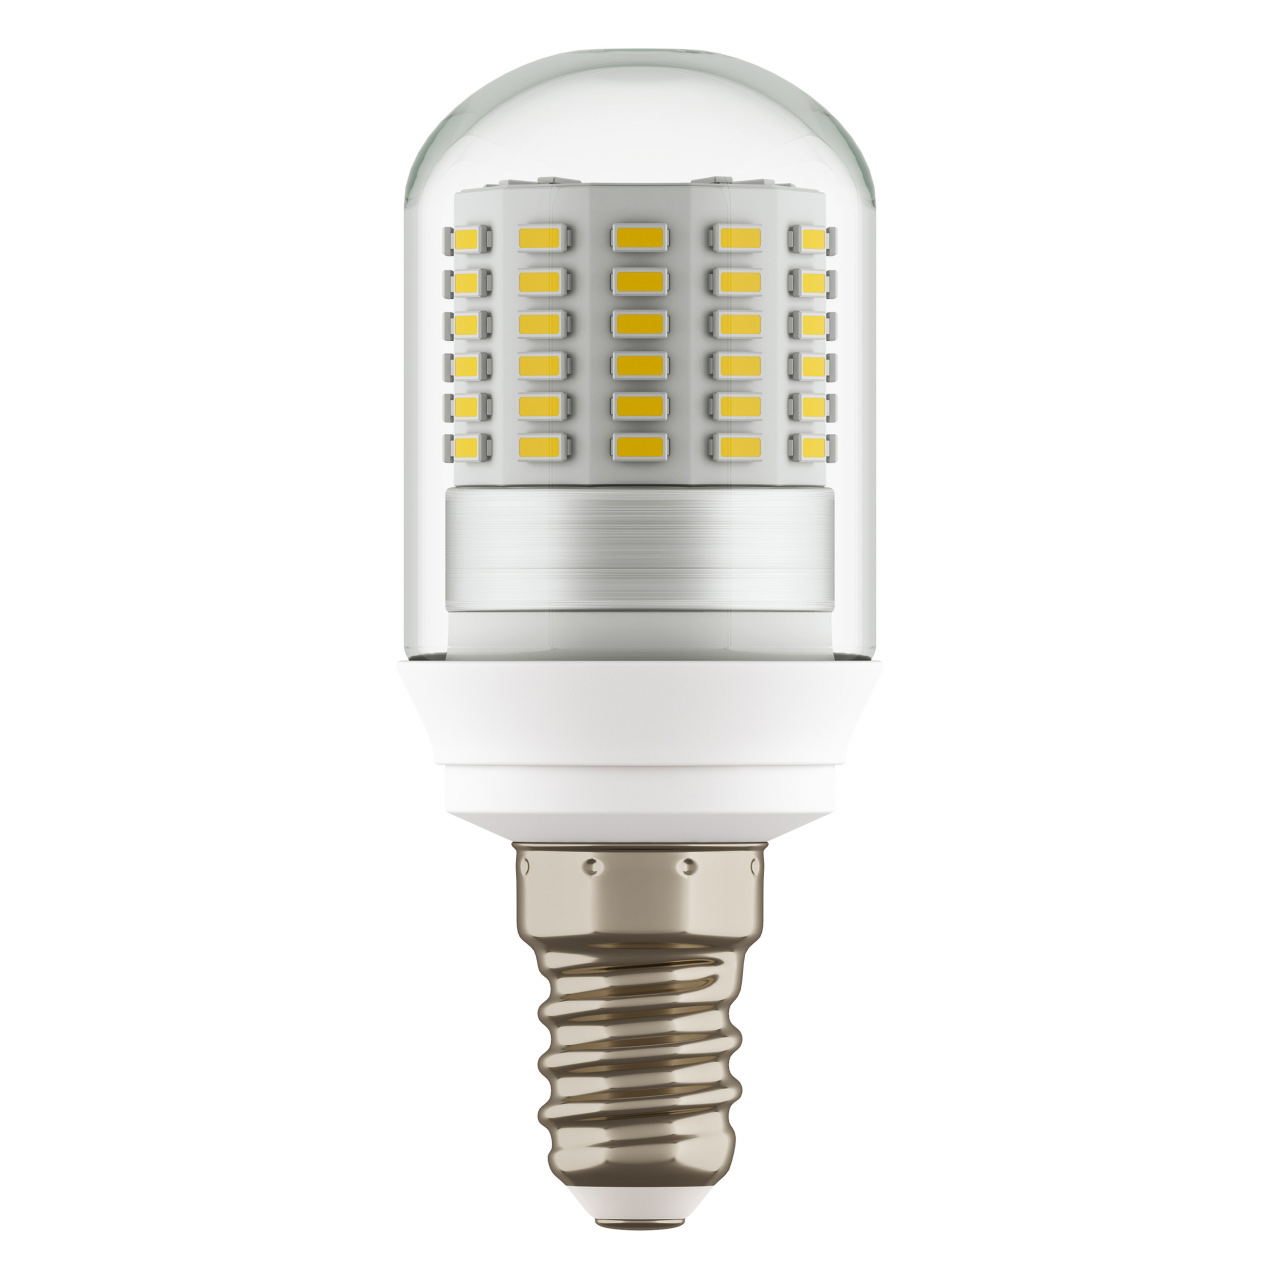 Лампа LED 220V T35 E14 9W=90W 850LM 360G CL 3000K 20000H Lightstar 930702